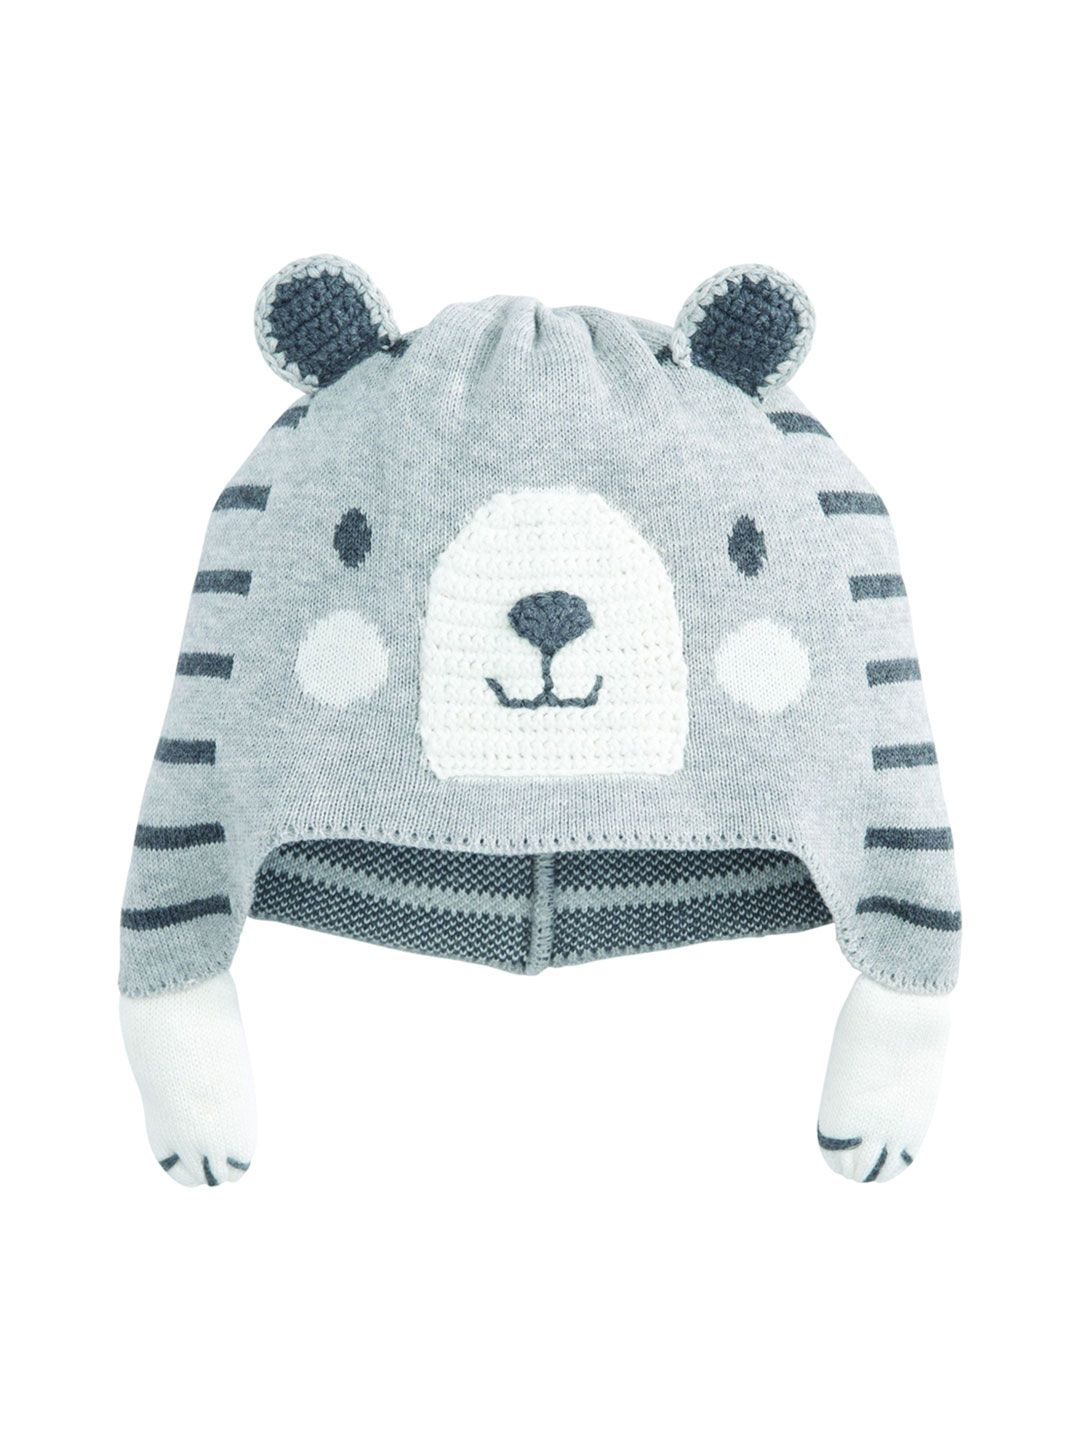 921a1df8f9a7 Knit cotton striped hat   Intarsia throughout   Front graphic ...